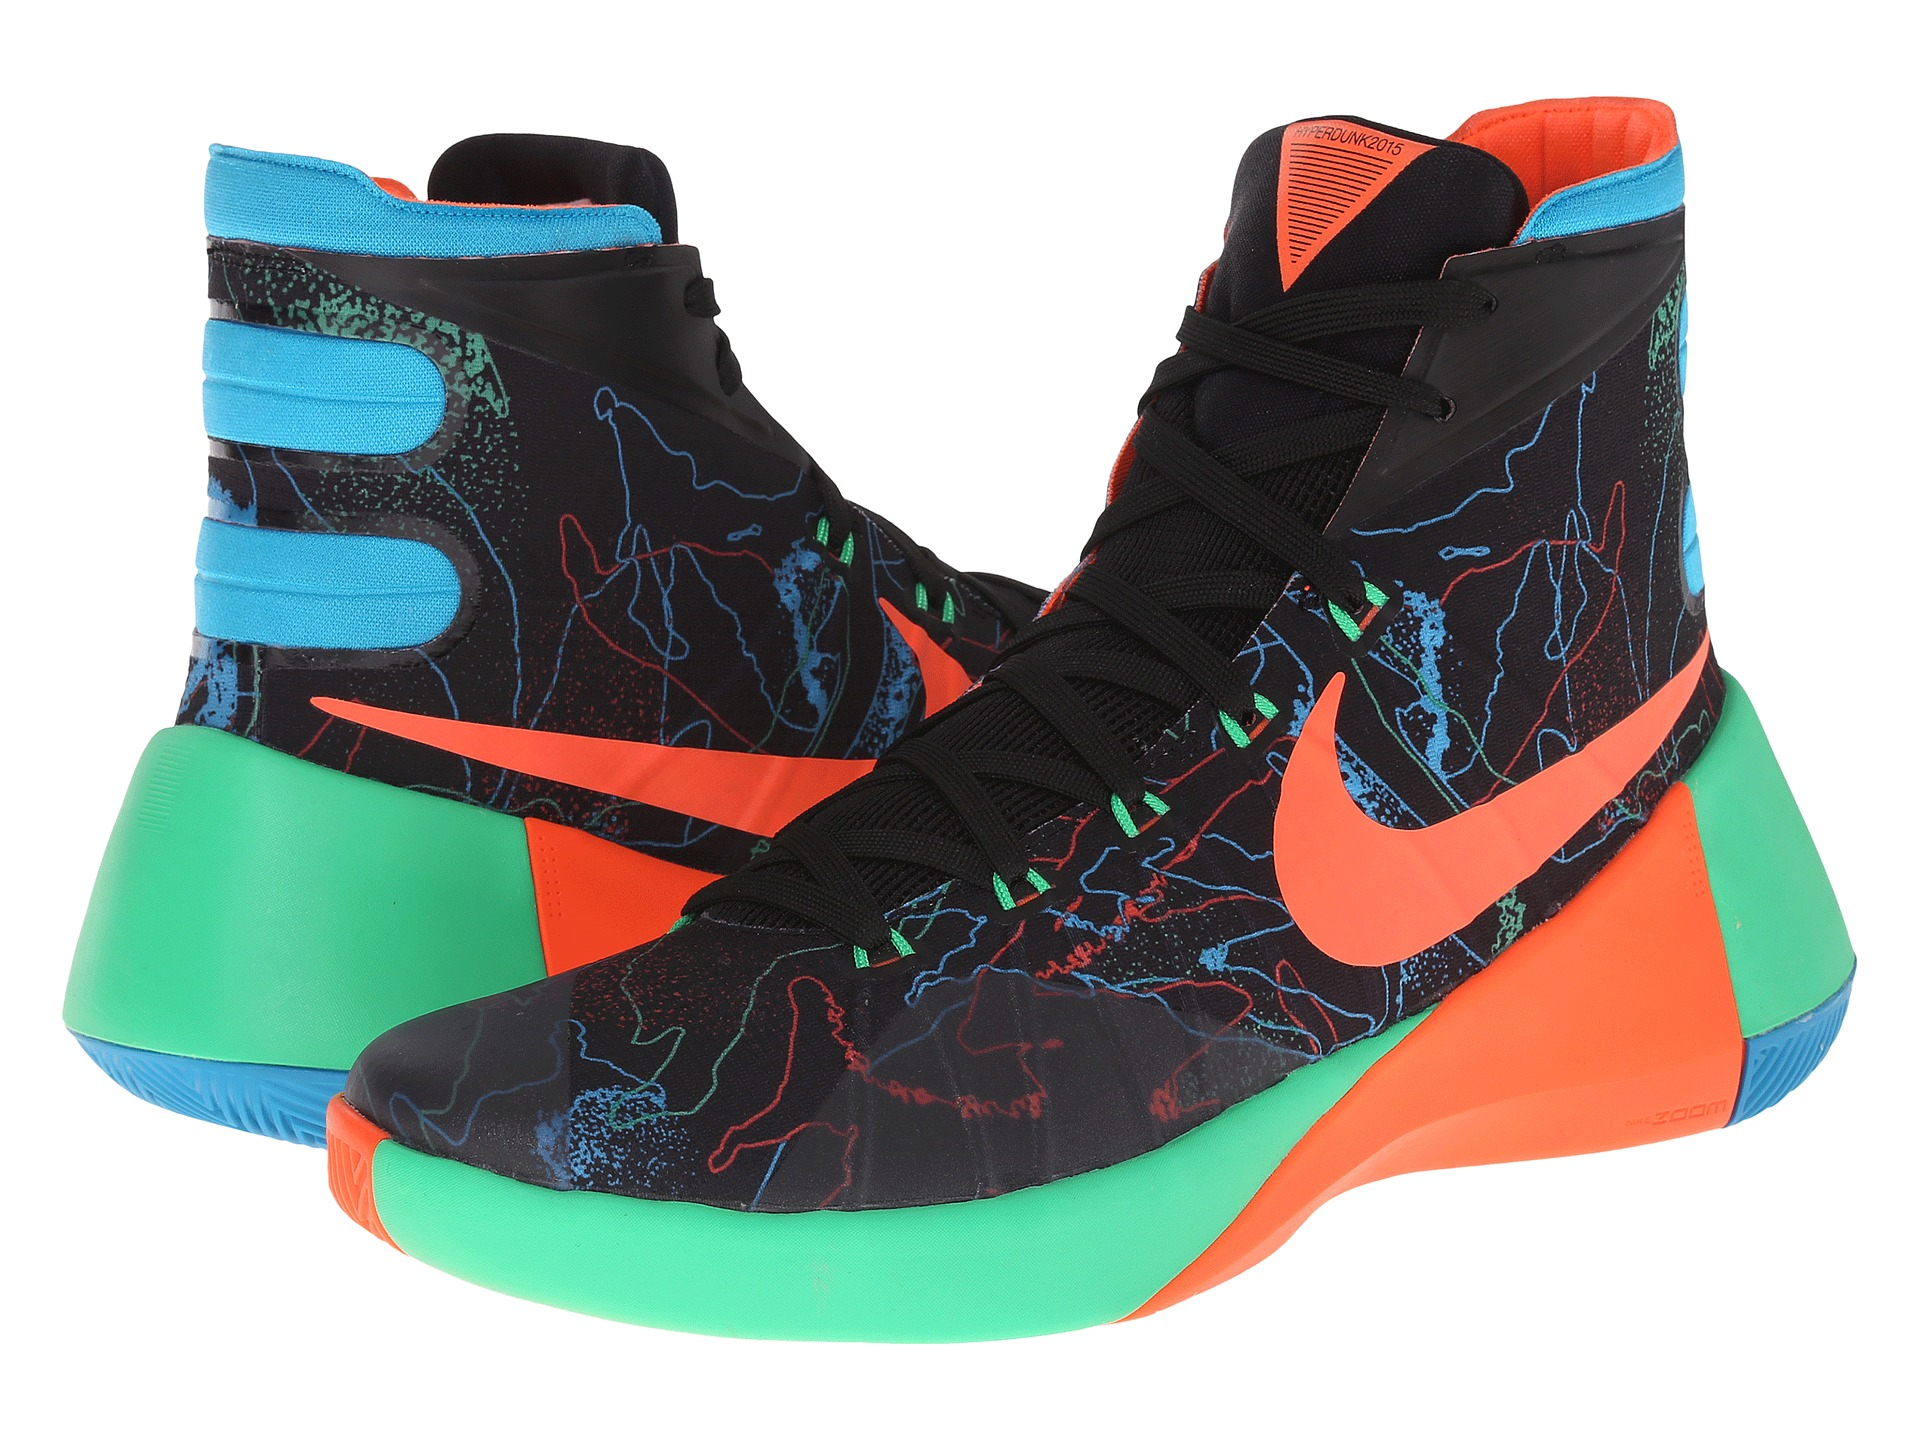 release date 57e9e 9663b ... nike blackblue lagoongreen shockhy hyperdunk 2015 prm black product 2  604092125 normal.